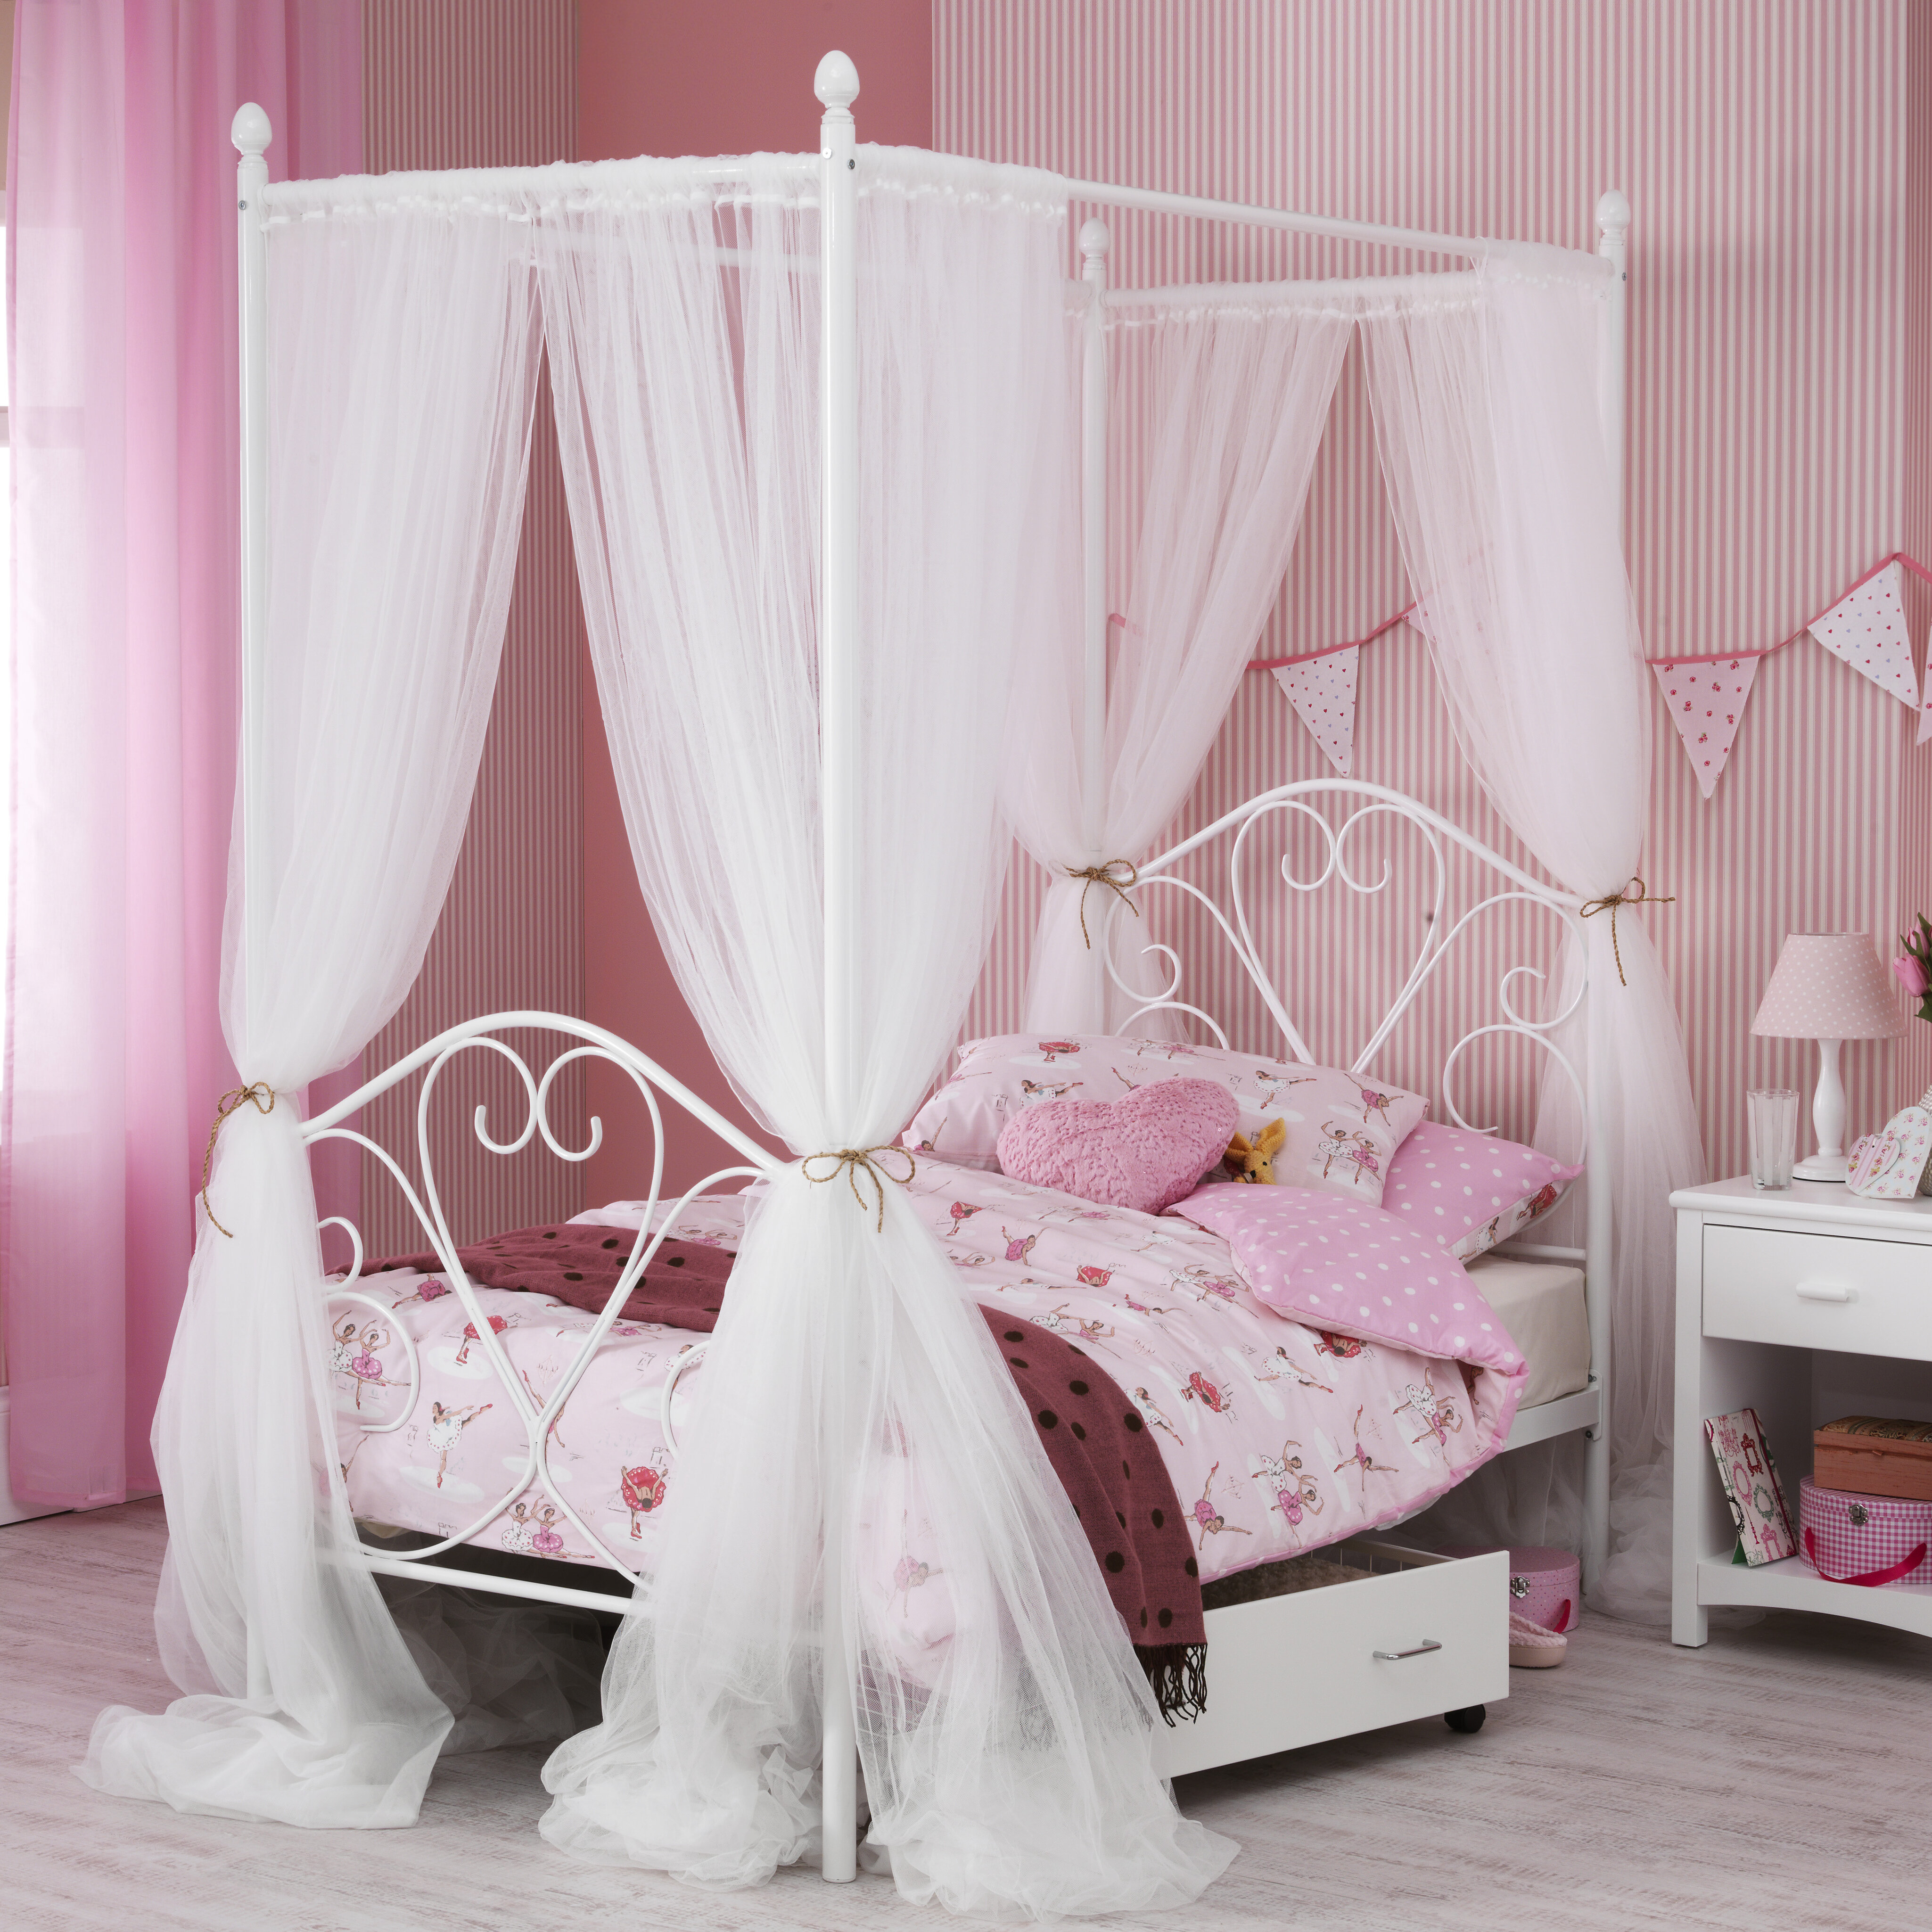 rc bed wood size color four s frame decorifusta your to fancy decorate fabulous smashing black using metal poster drapes canopy encouragement bedroom how